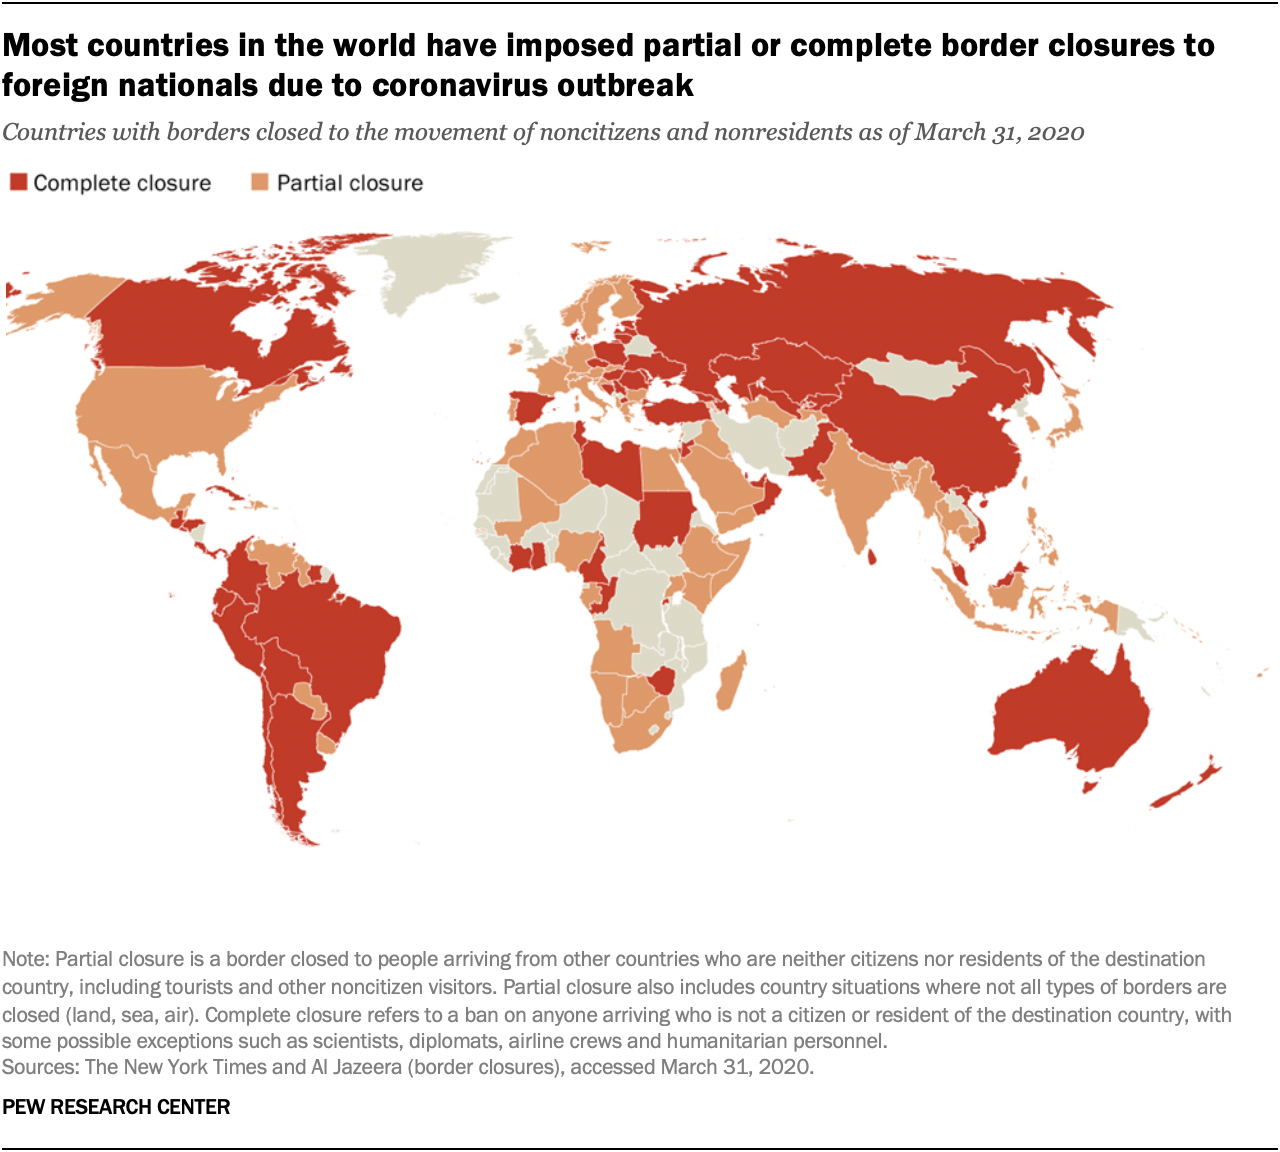 Most countries have imposed partial or complete border closure COVID-19